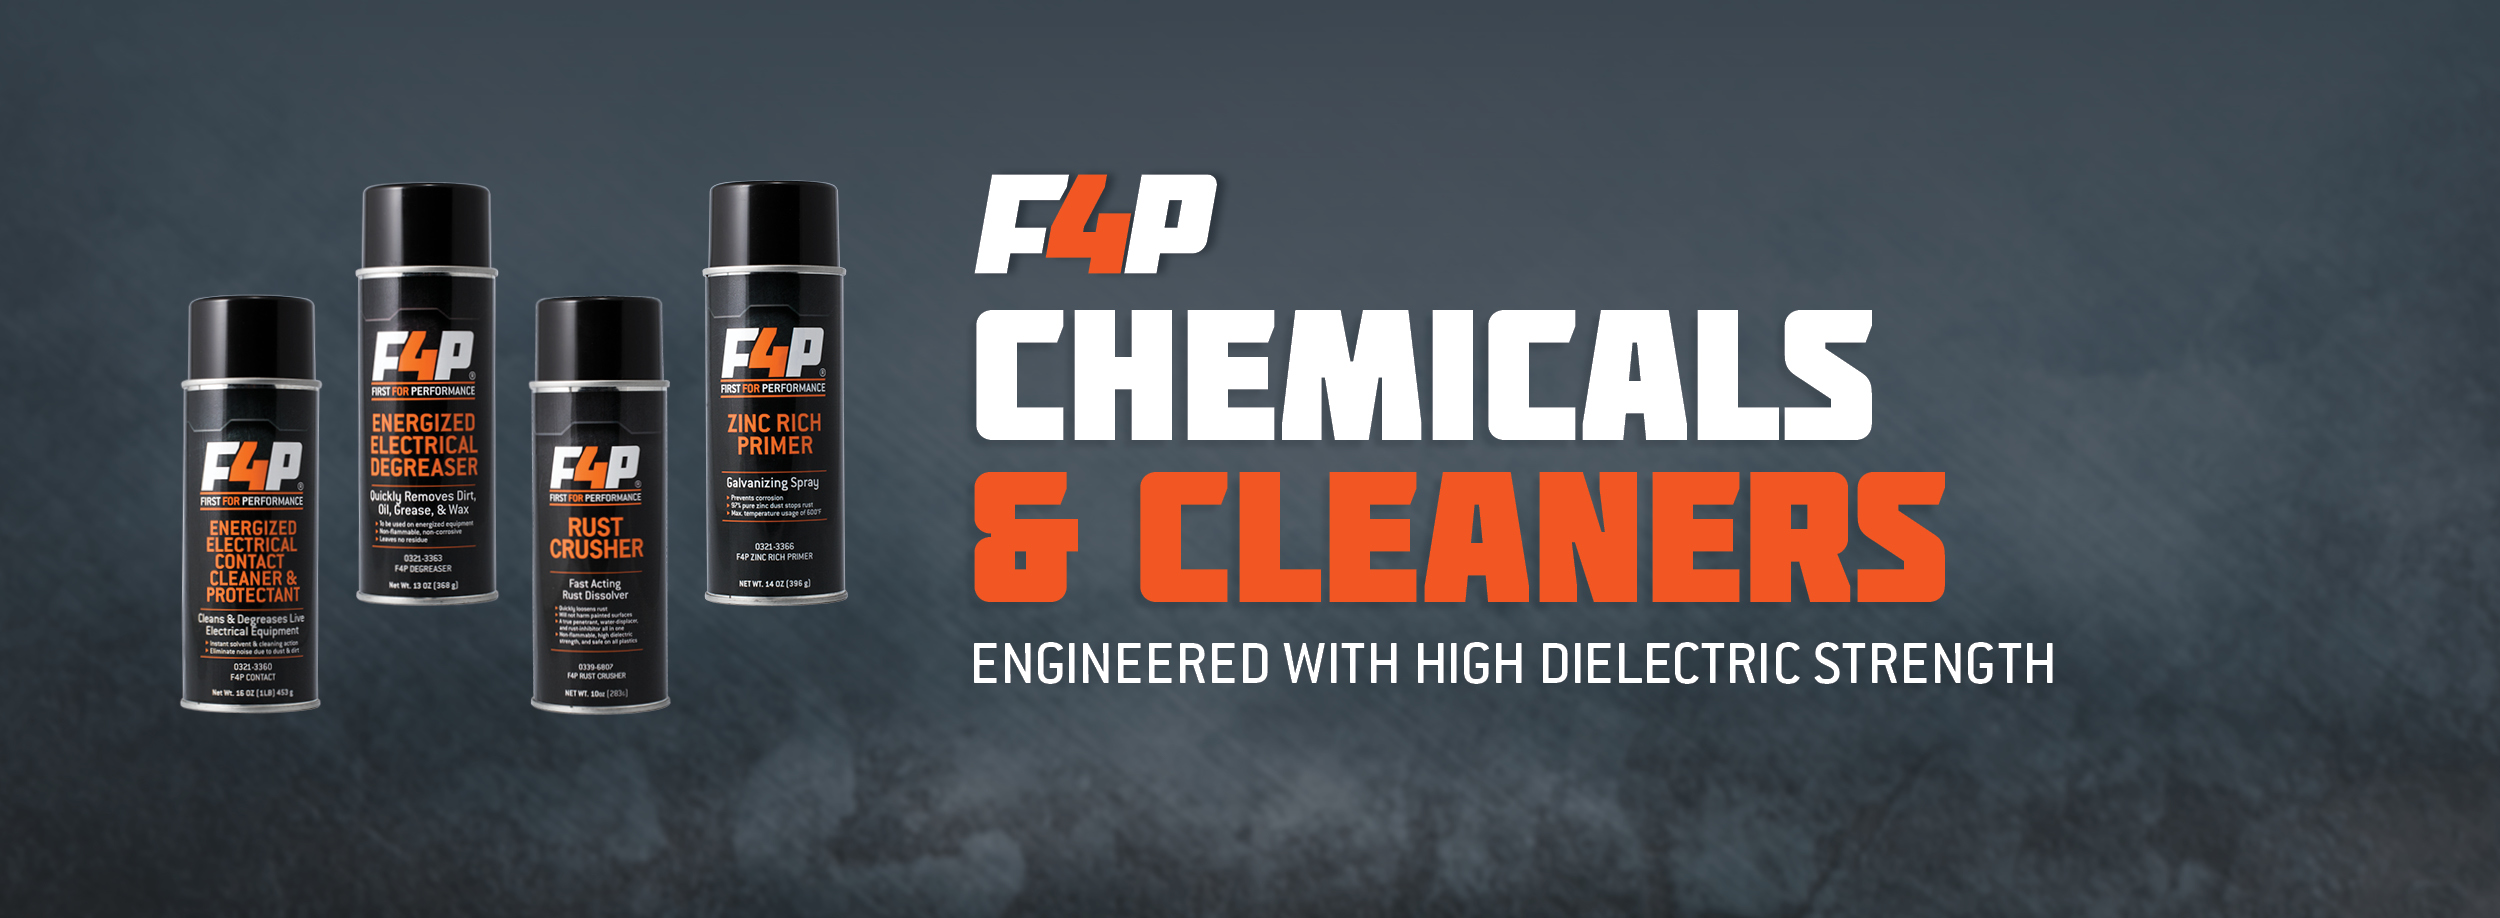 F4P Chemicals and Cleaners